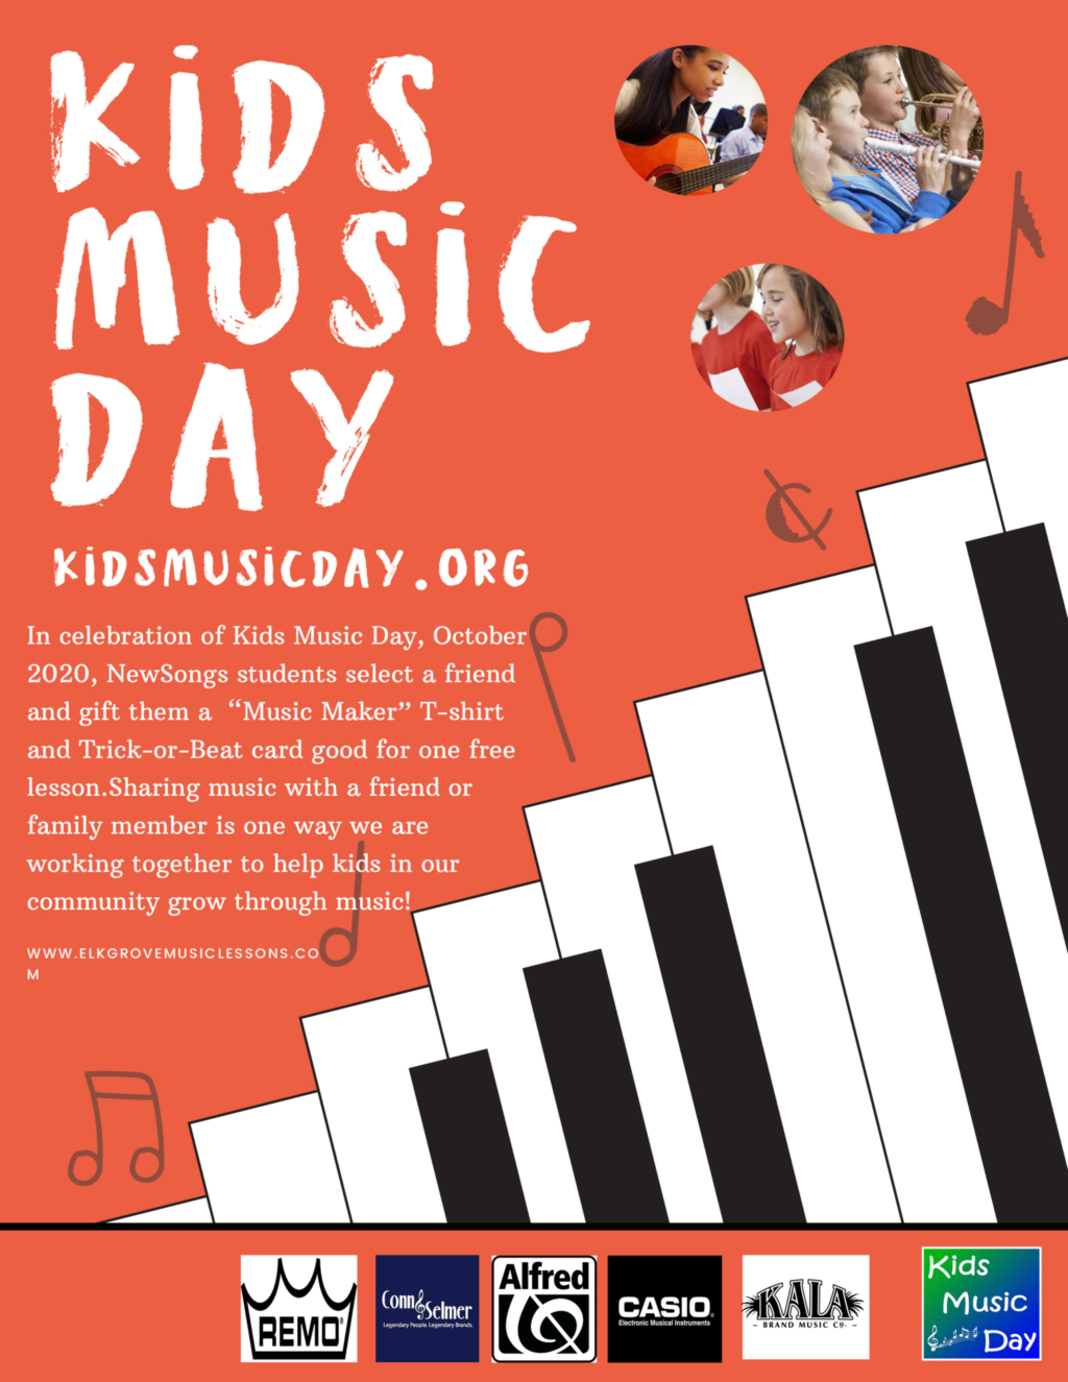 We want to give your friends a free gift for Kids Music Day!  Image